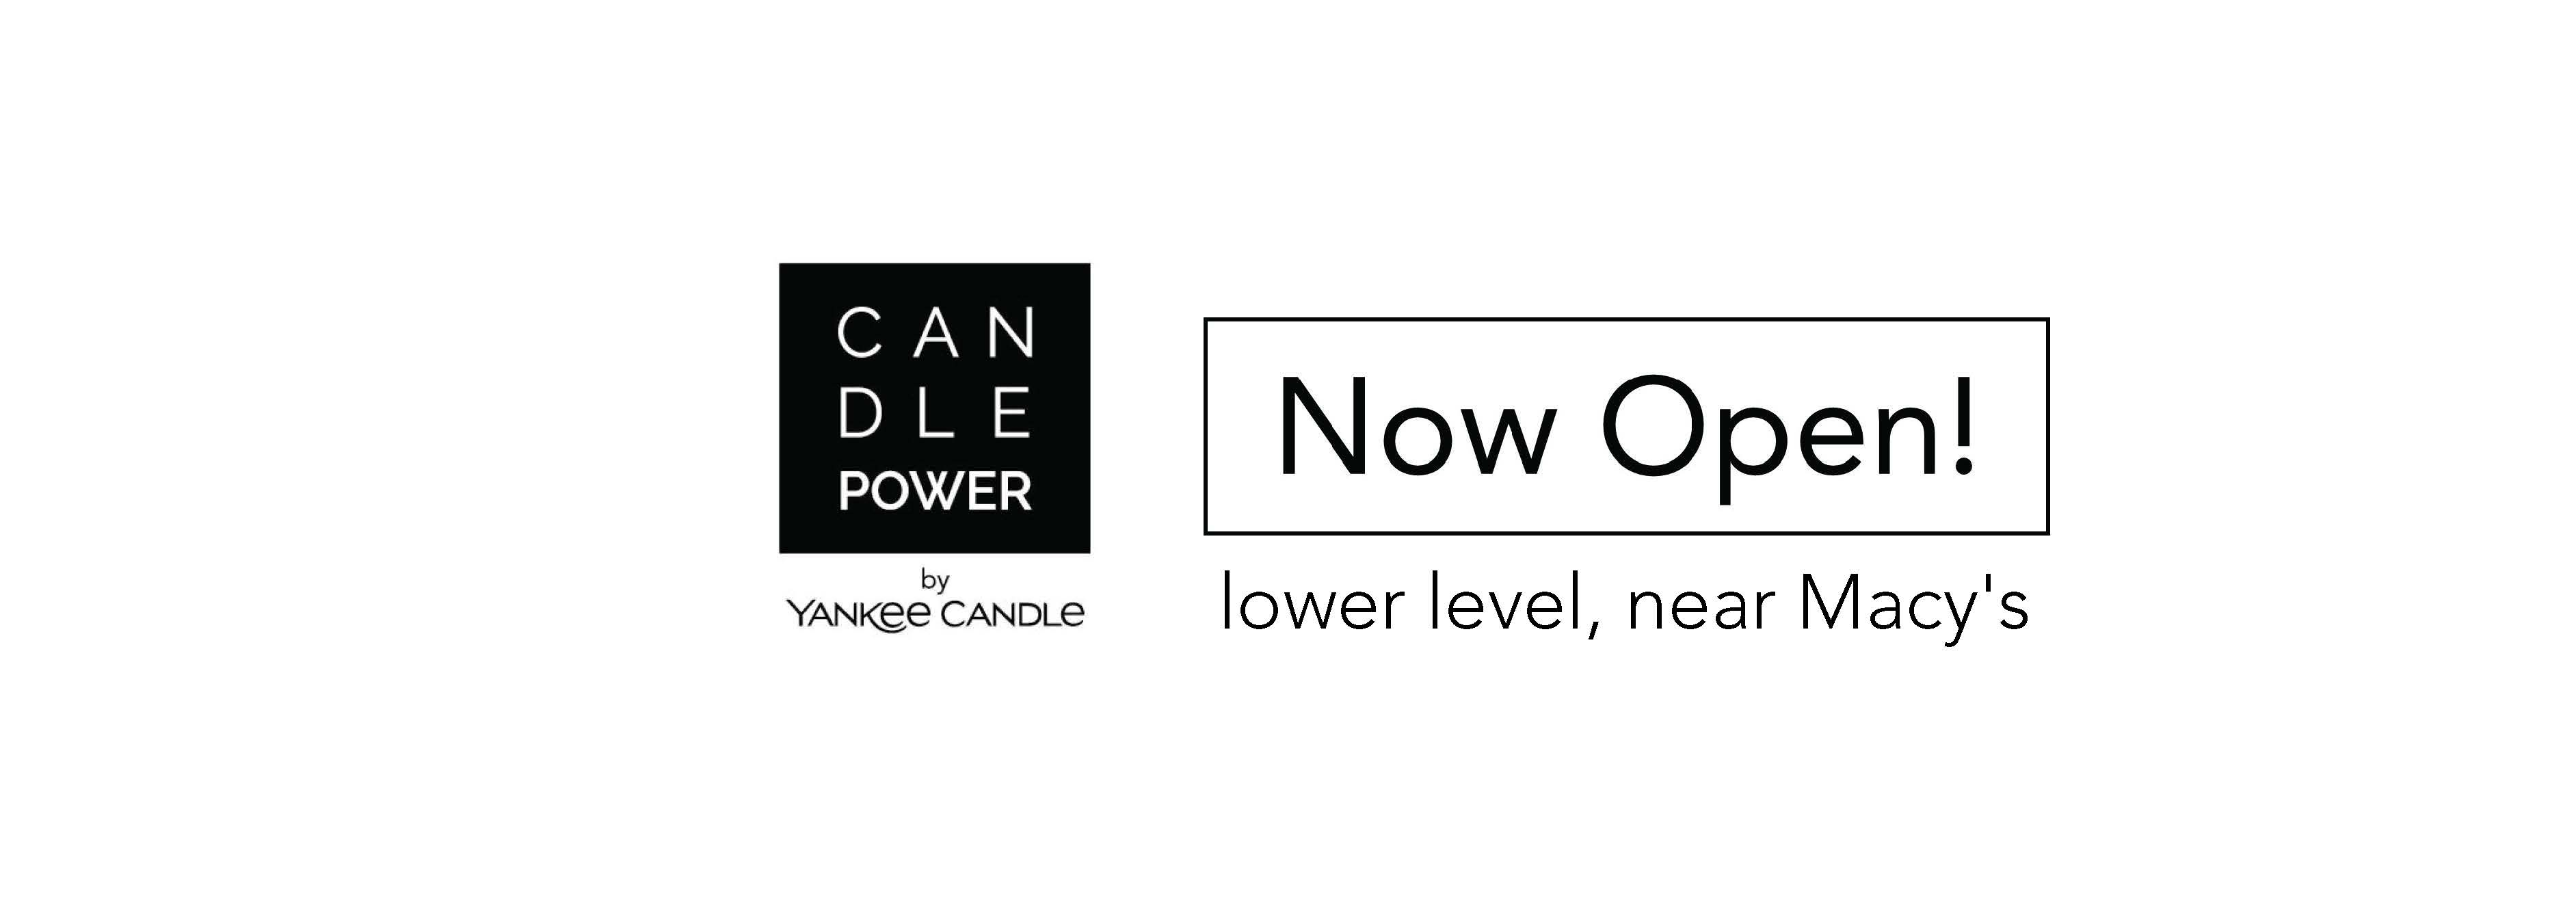 Candle Power Banner - Smaller Version